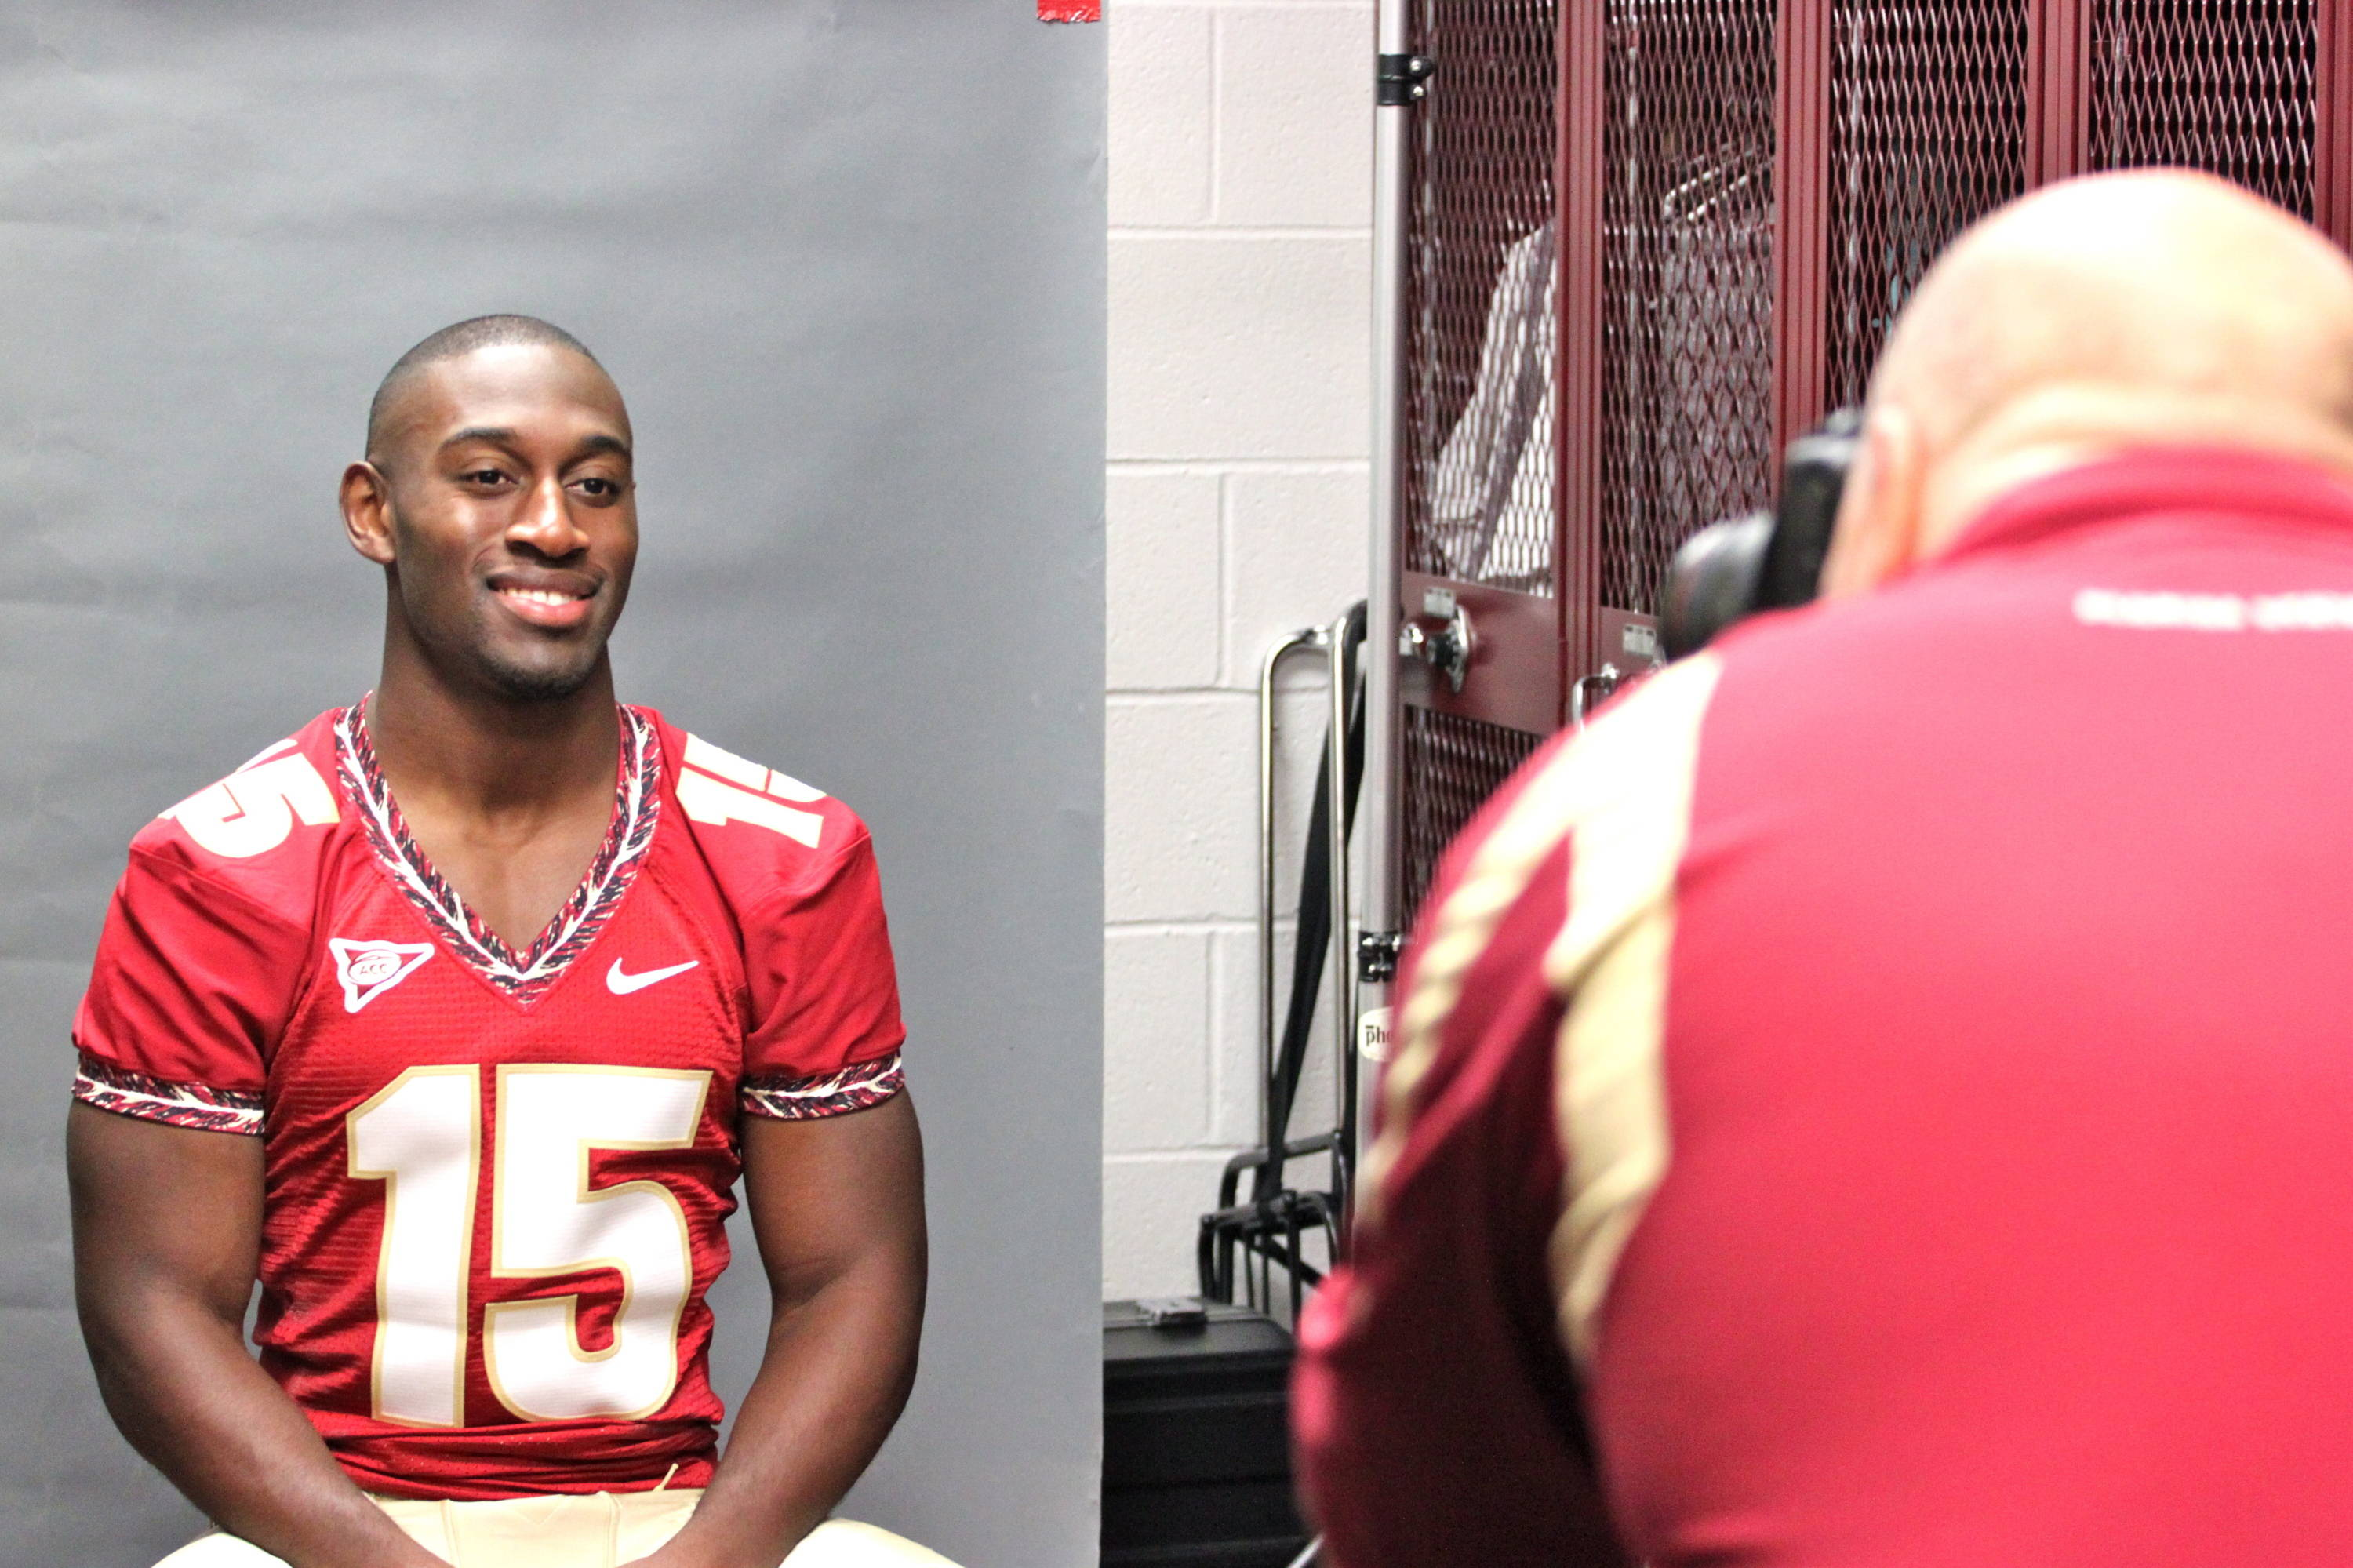 Ochuko Jenije (15) taking his picture during media day.